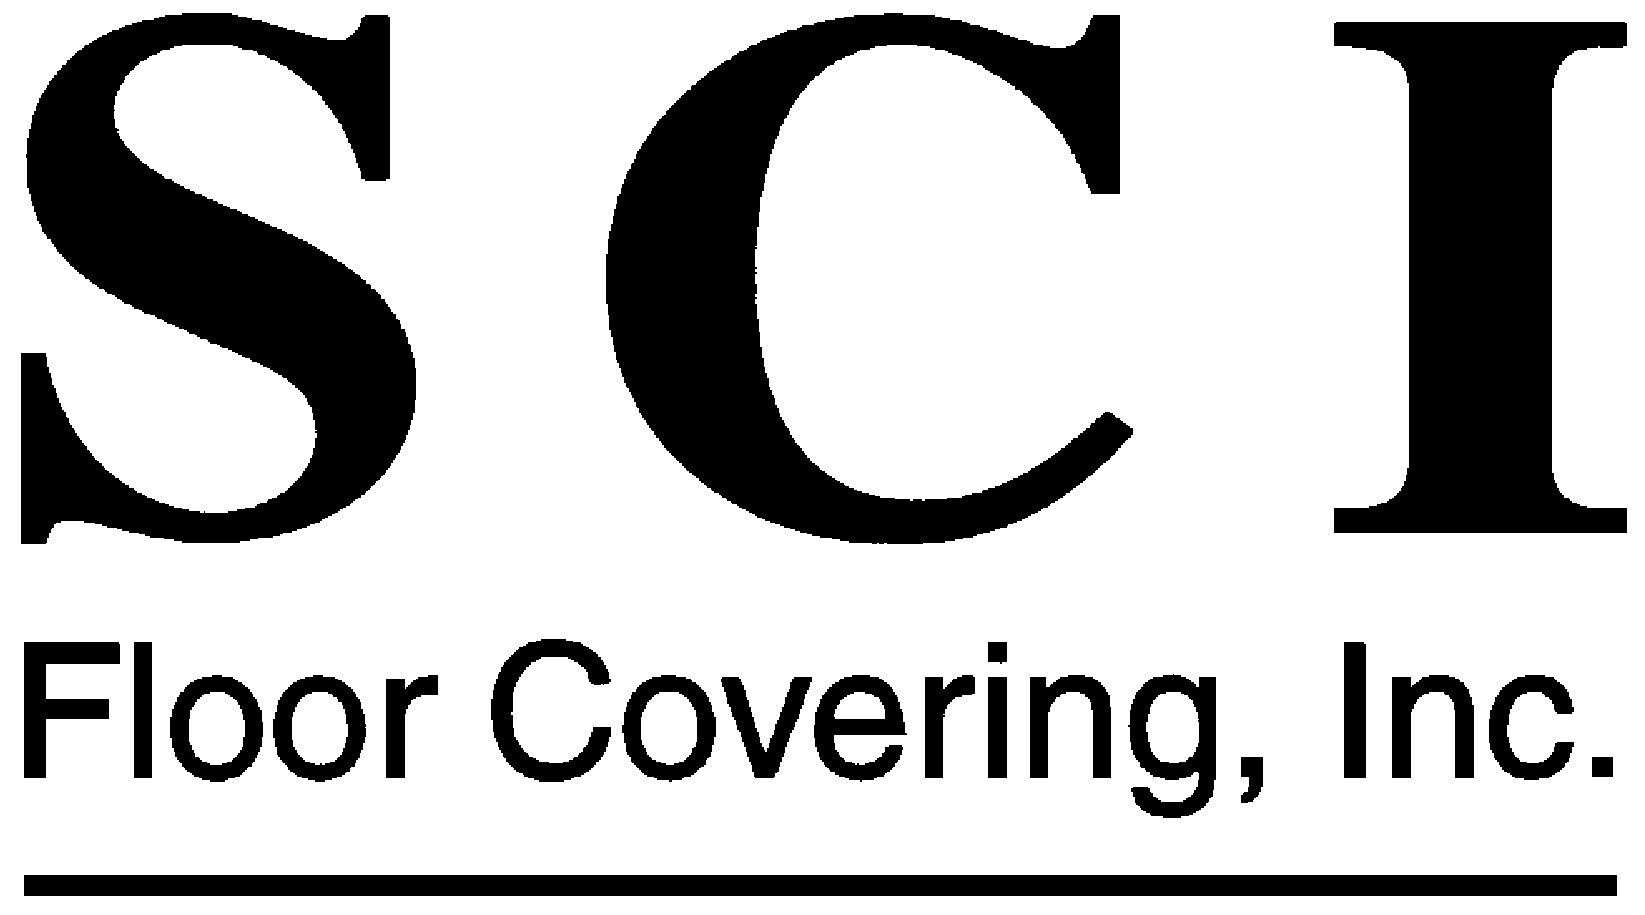 SCI Floor Covering Inc.